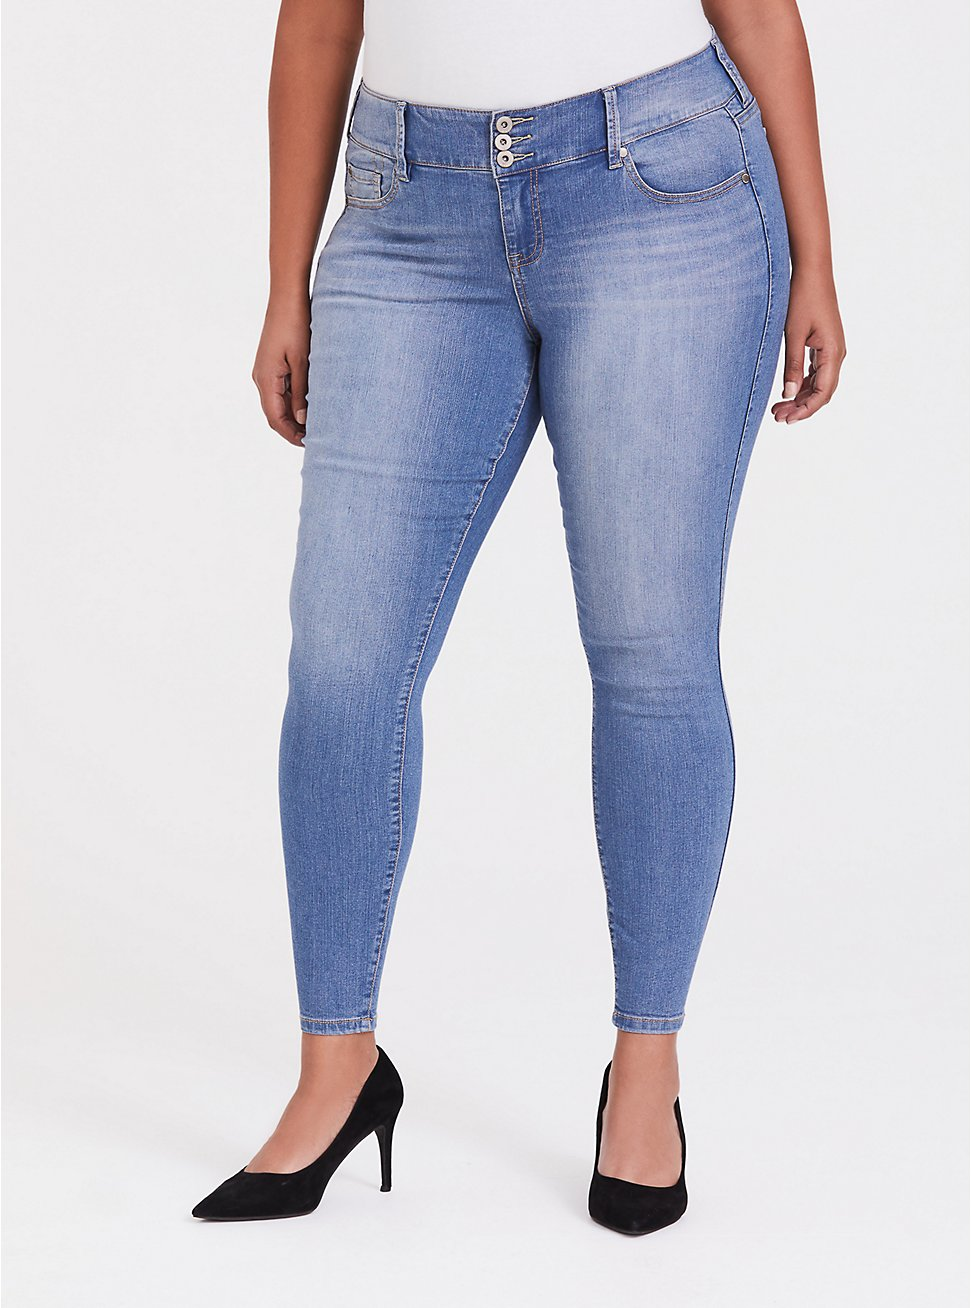 Plus Size Jegging - Super Stretch Light Wash, GROUPIE, hi-res